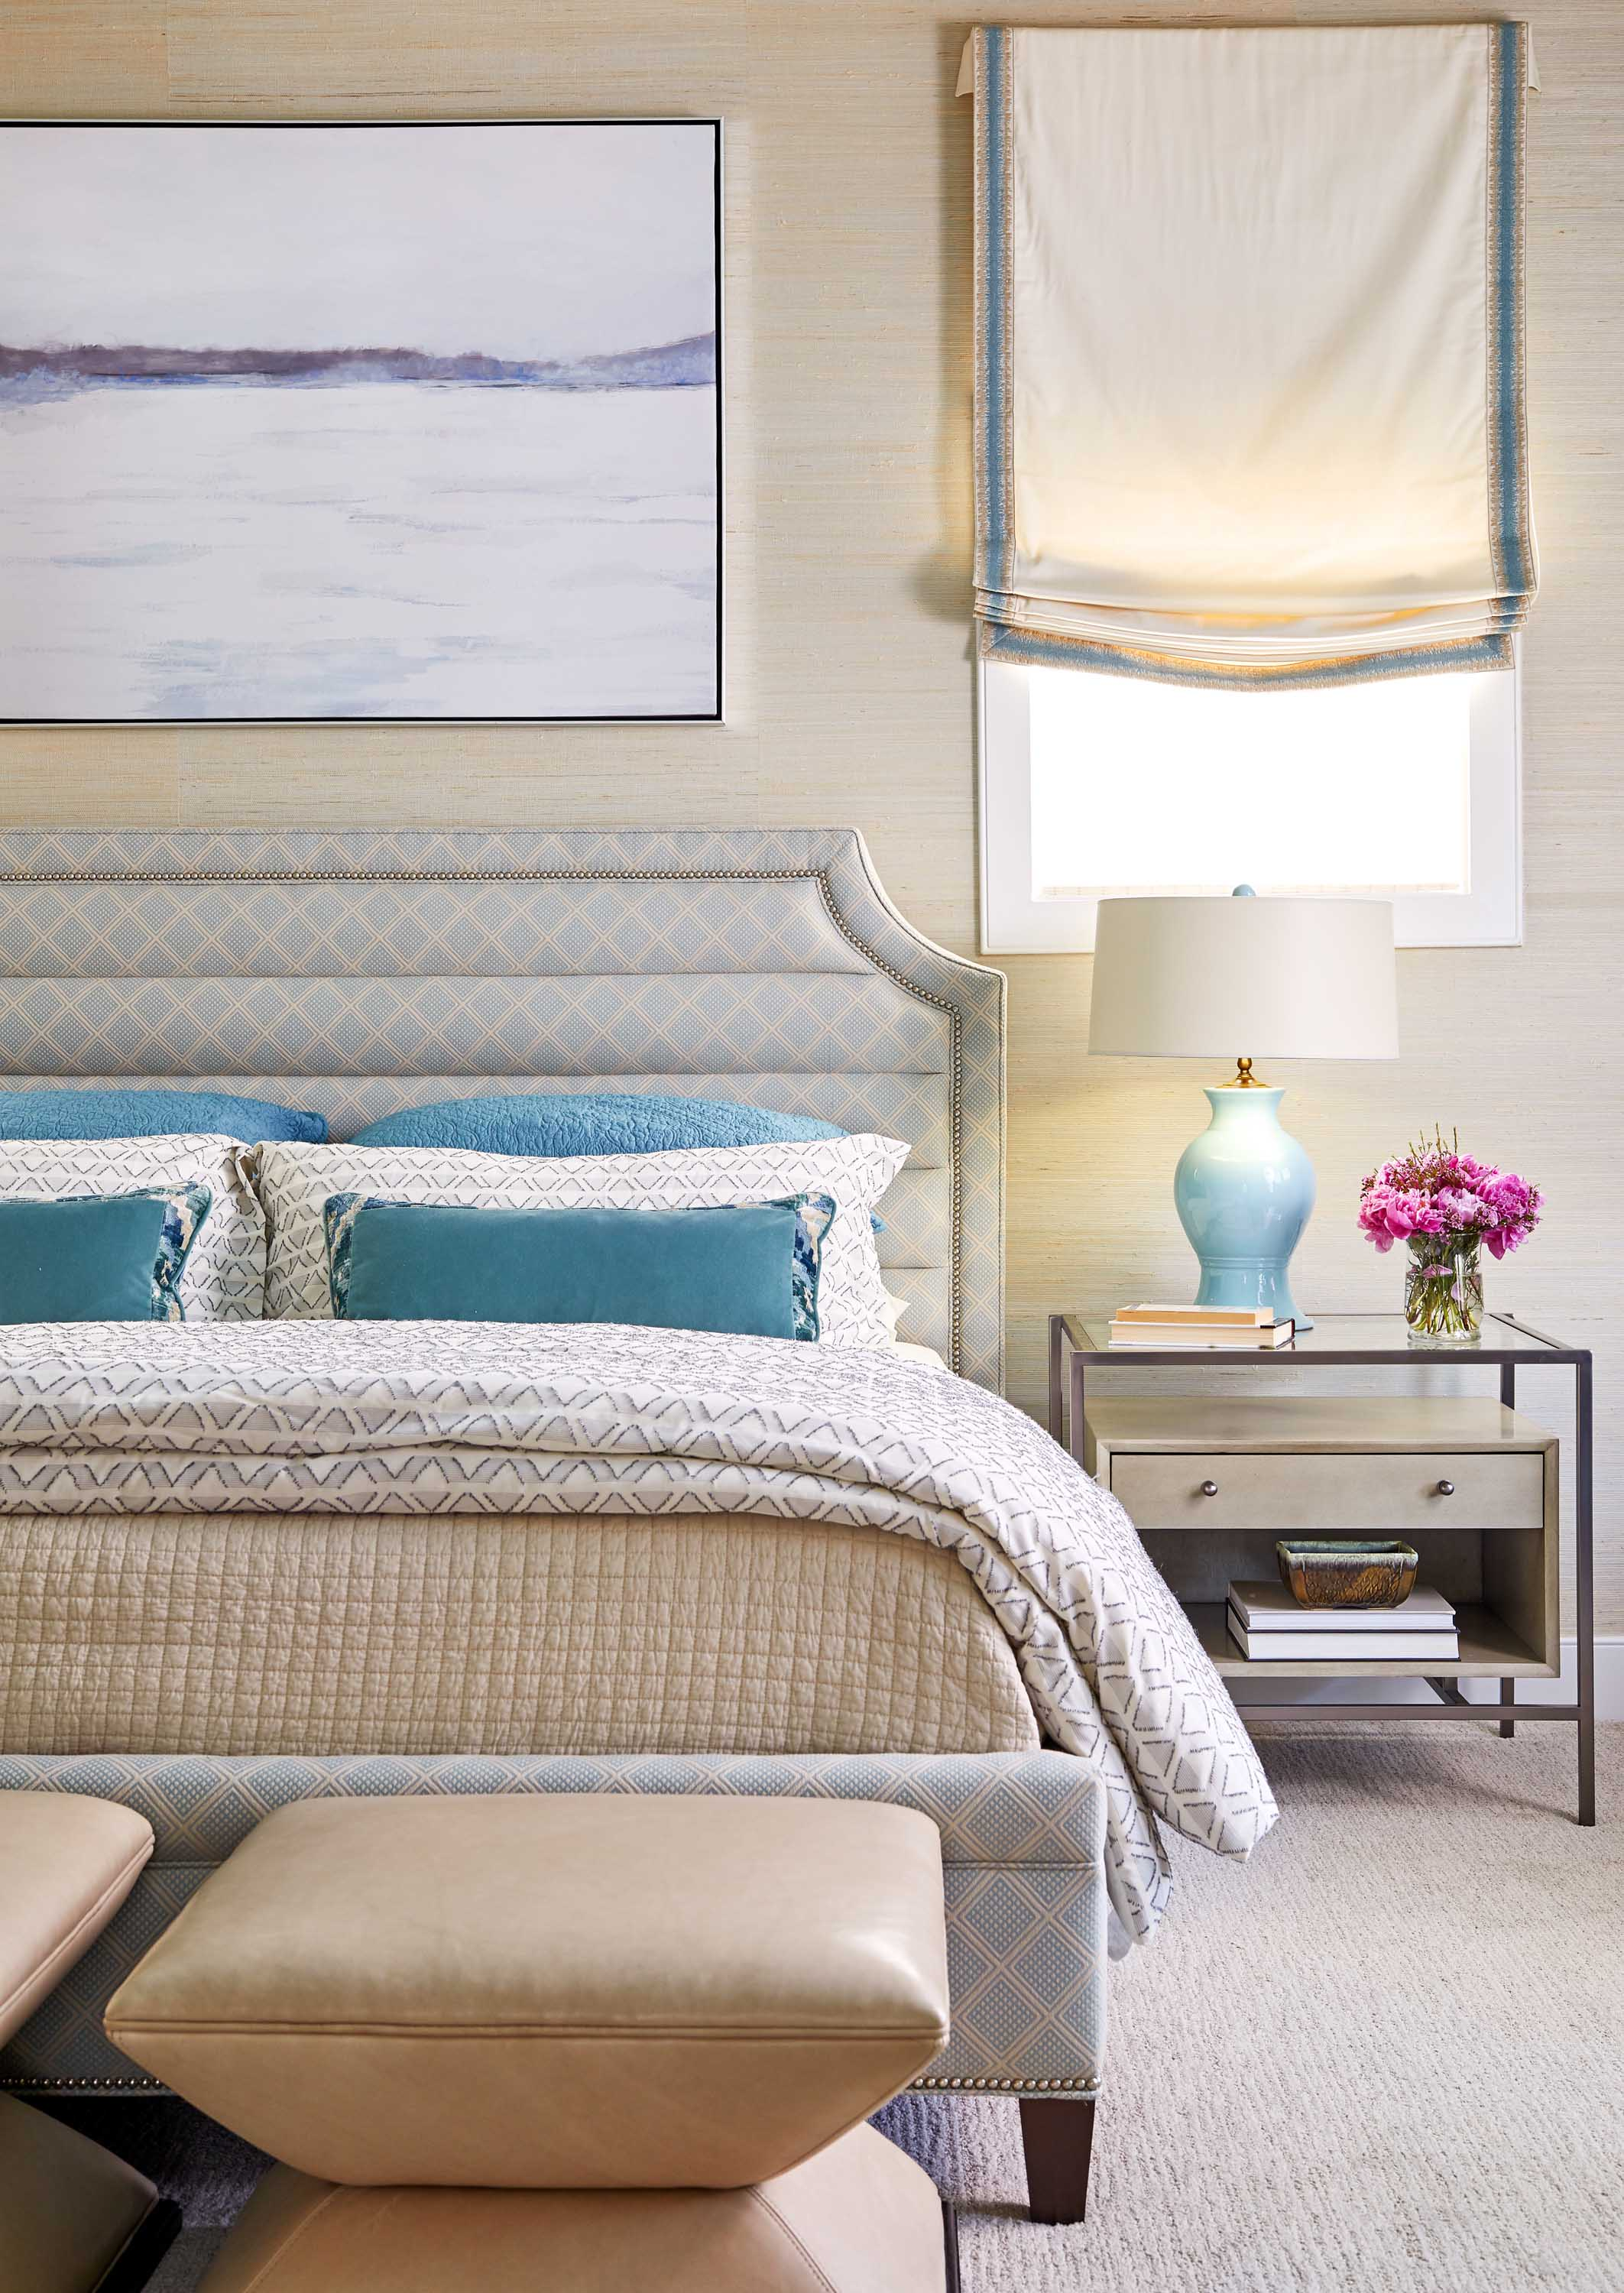 Luxurious bedroom with blue pillows and bedside lamp best of Boston Cambridge DC top-designers Dane Austin Design